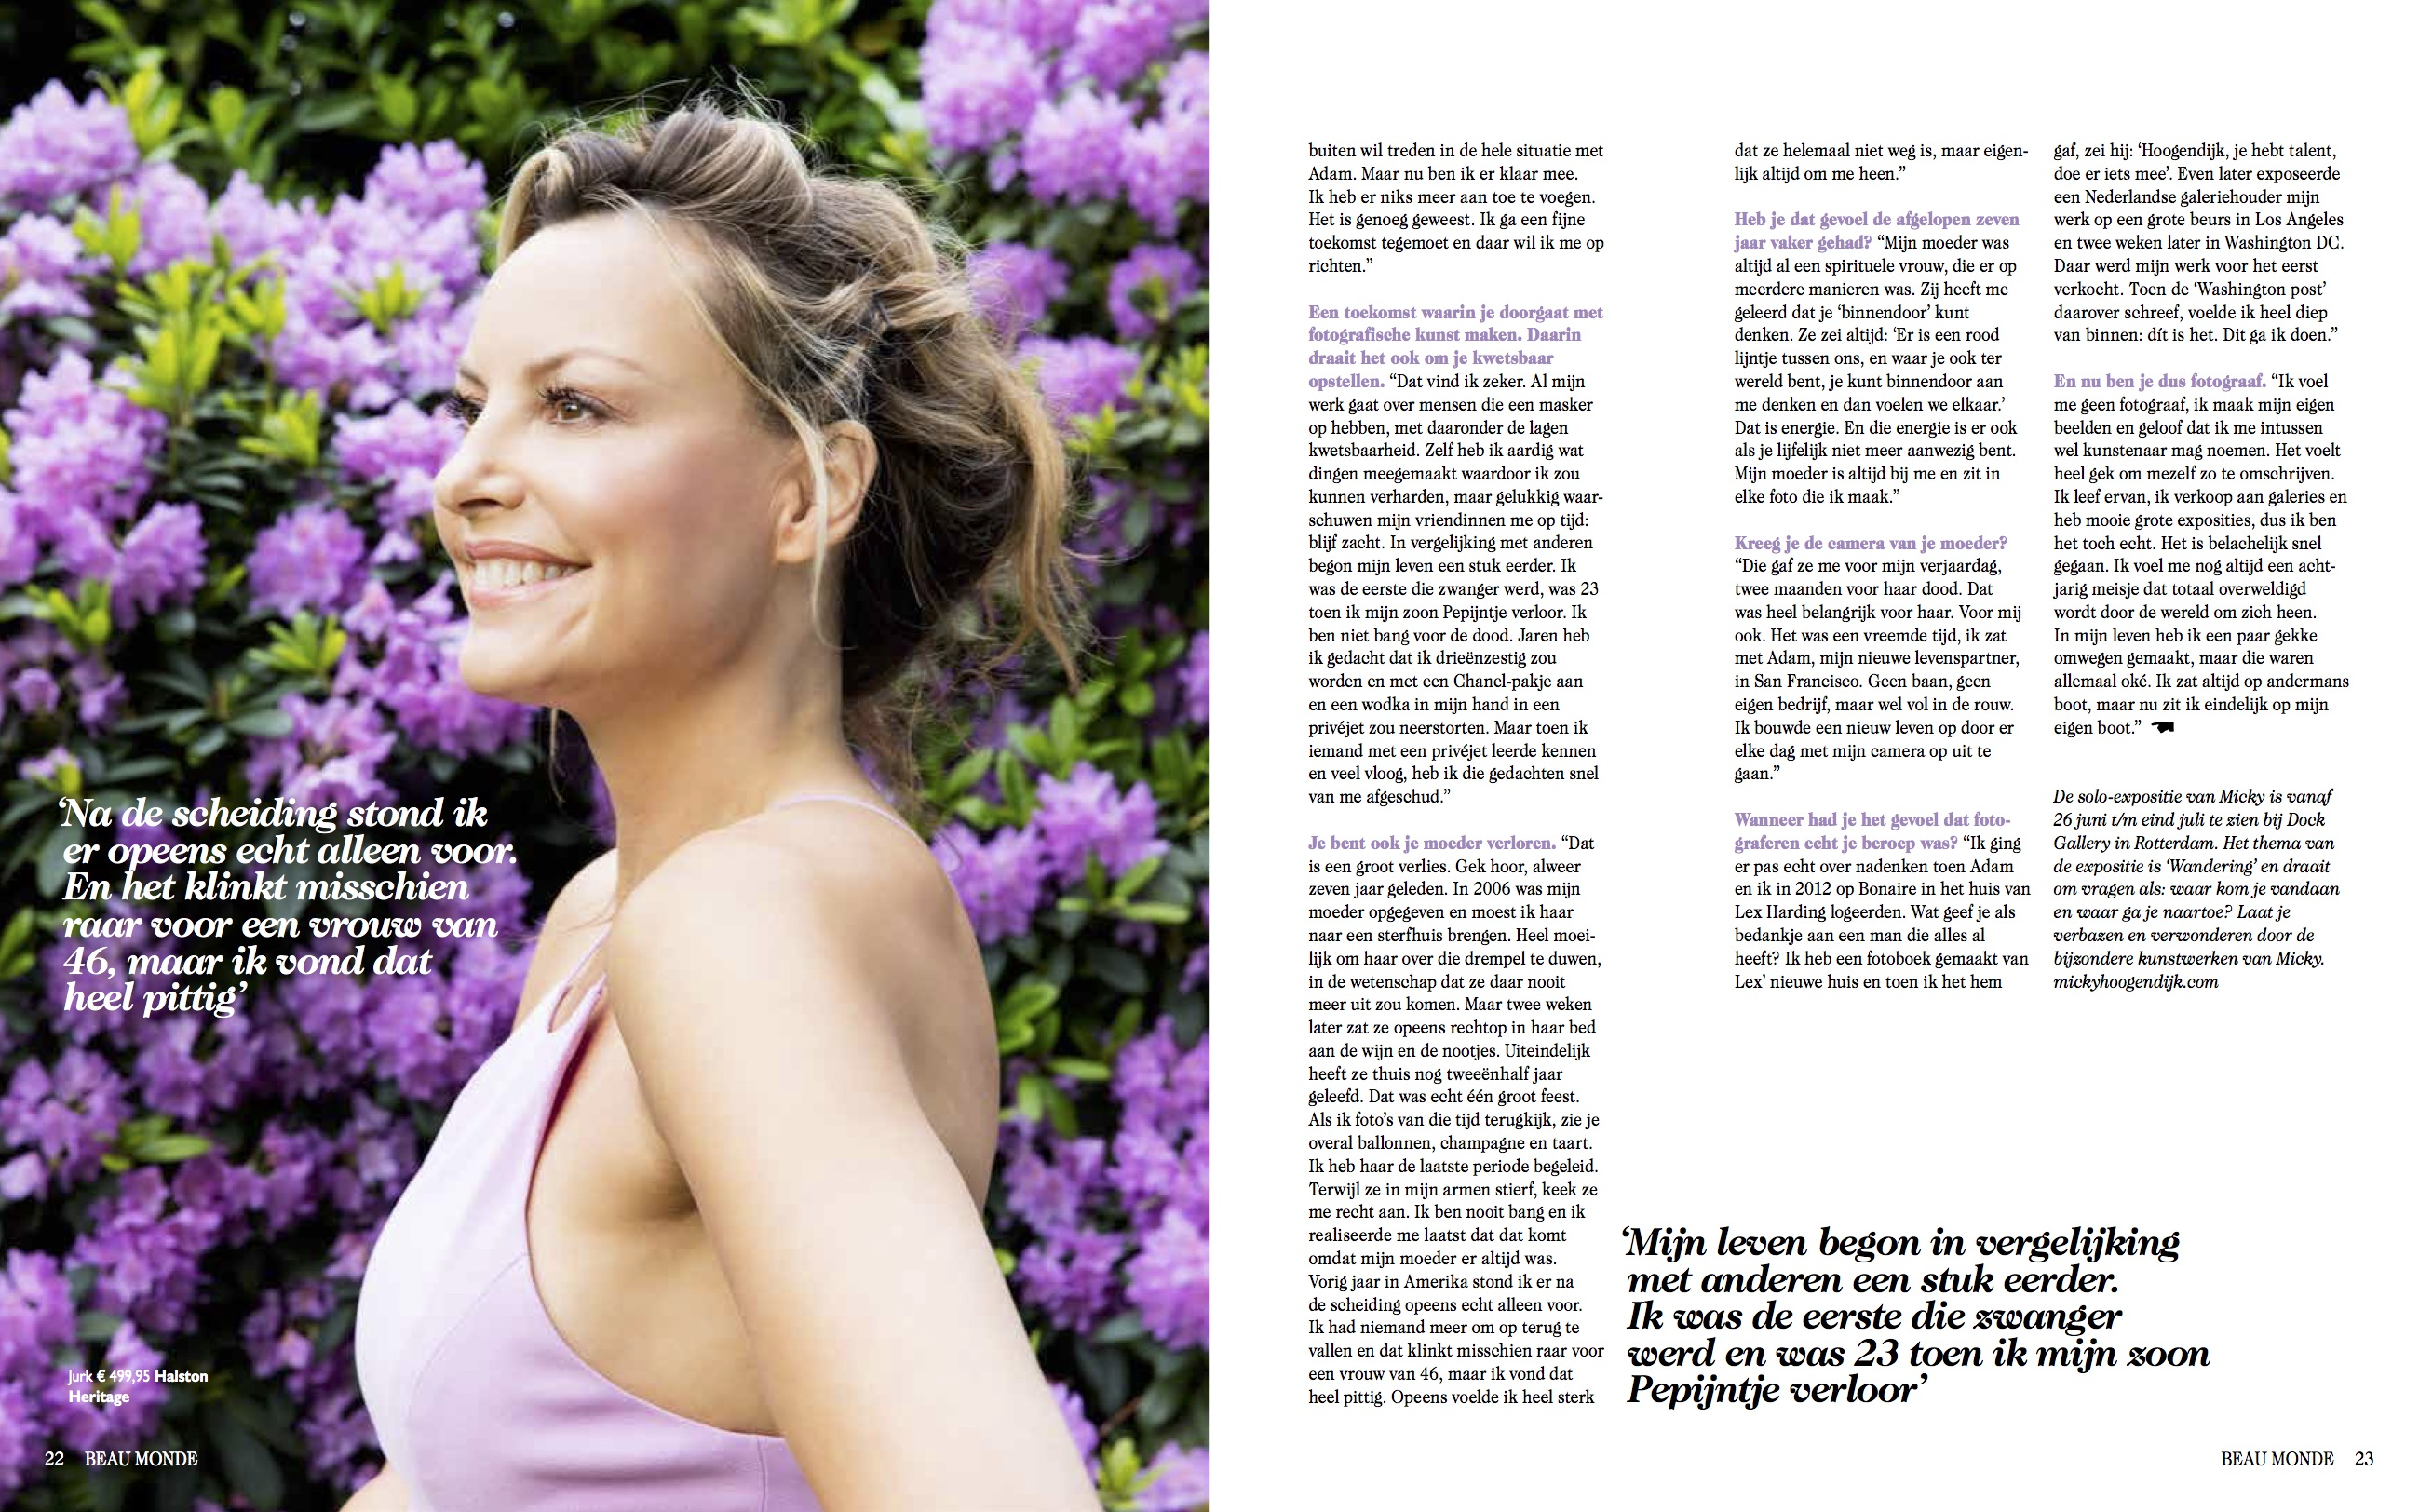 Groot Interview Beau Monde 4